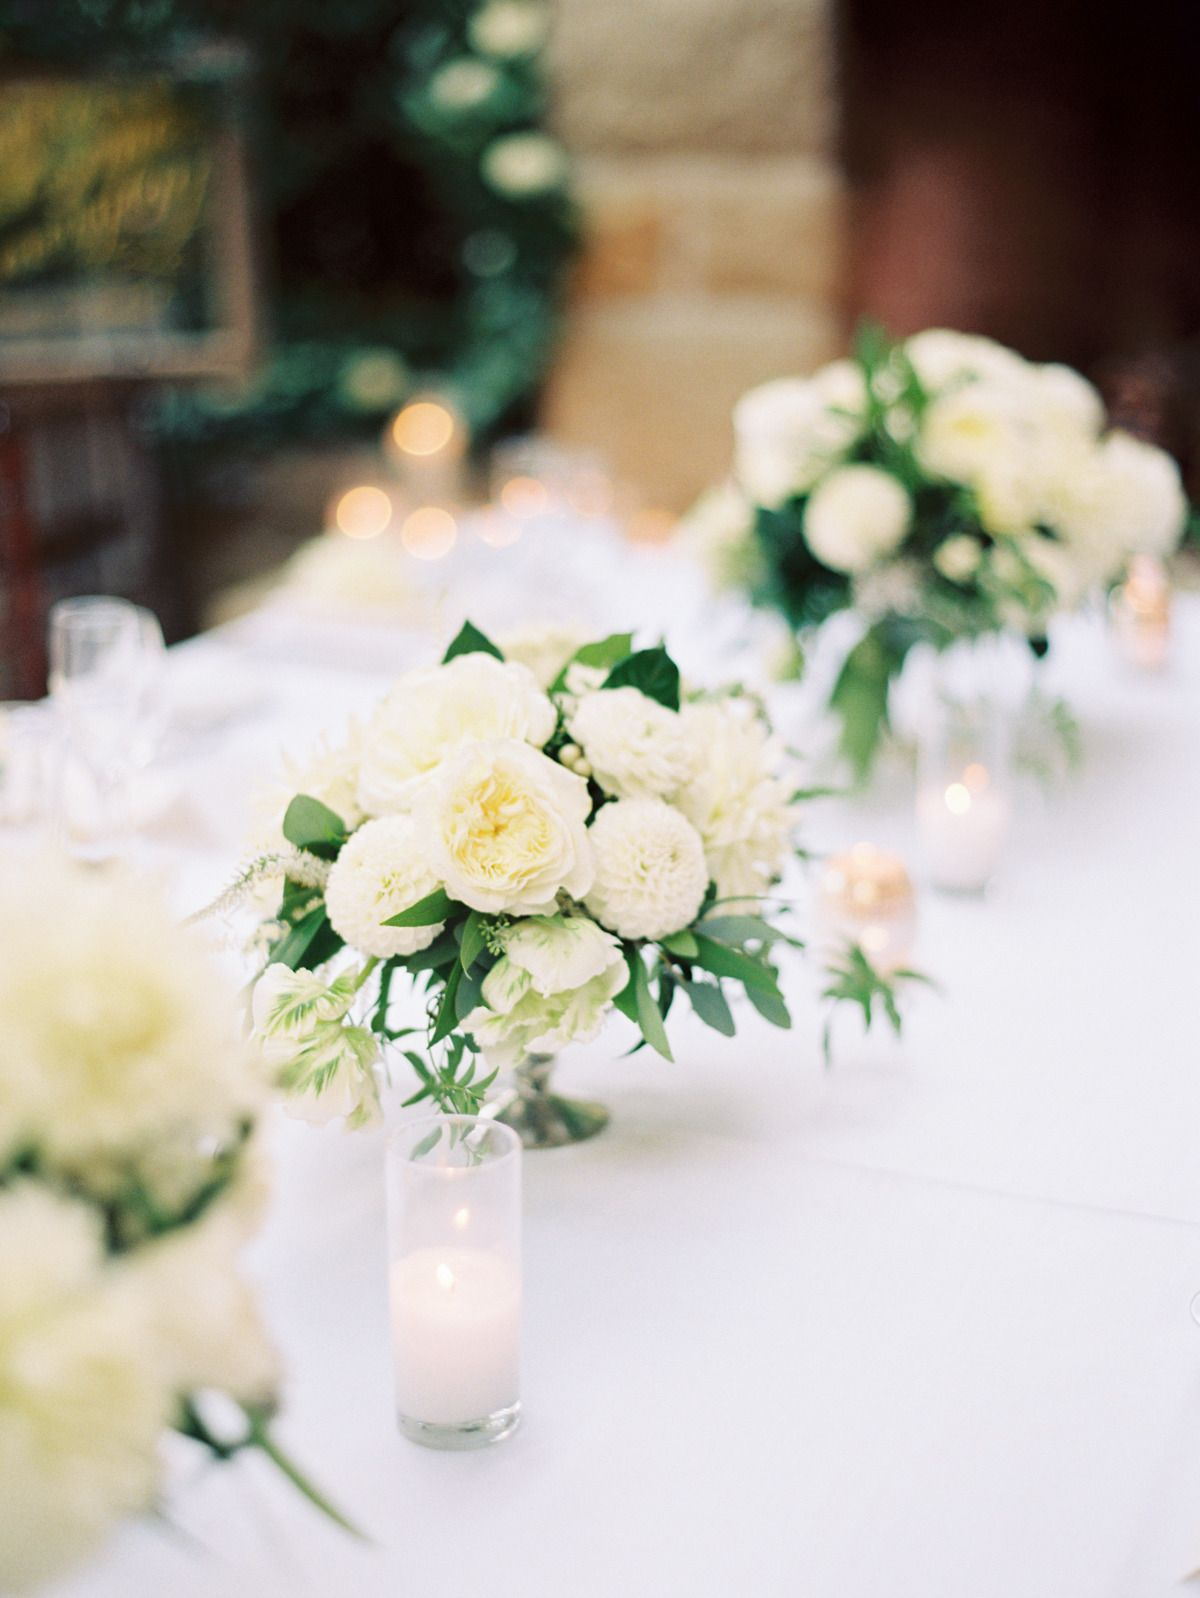 Elegant Fall San Ysidro Wedding | Elegant, Weddings and Centerpieces